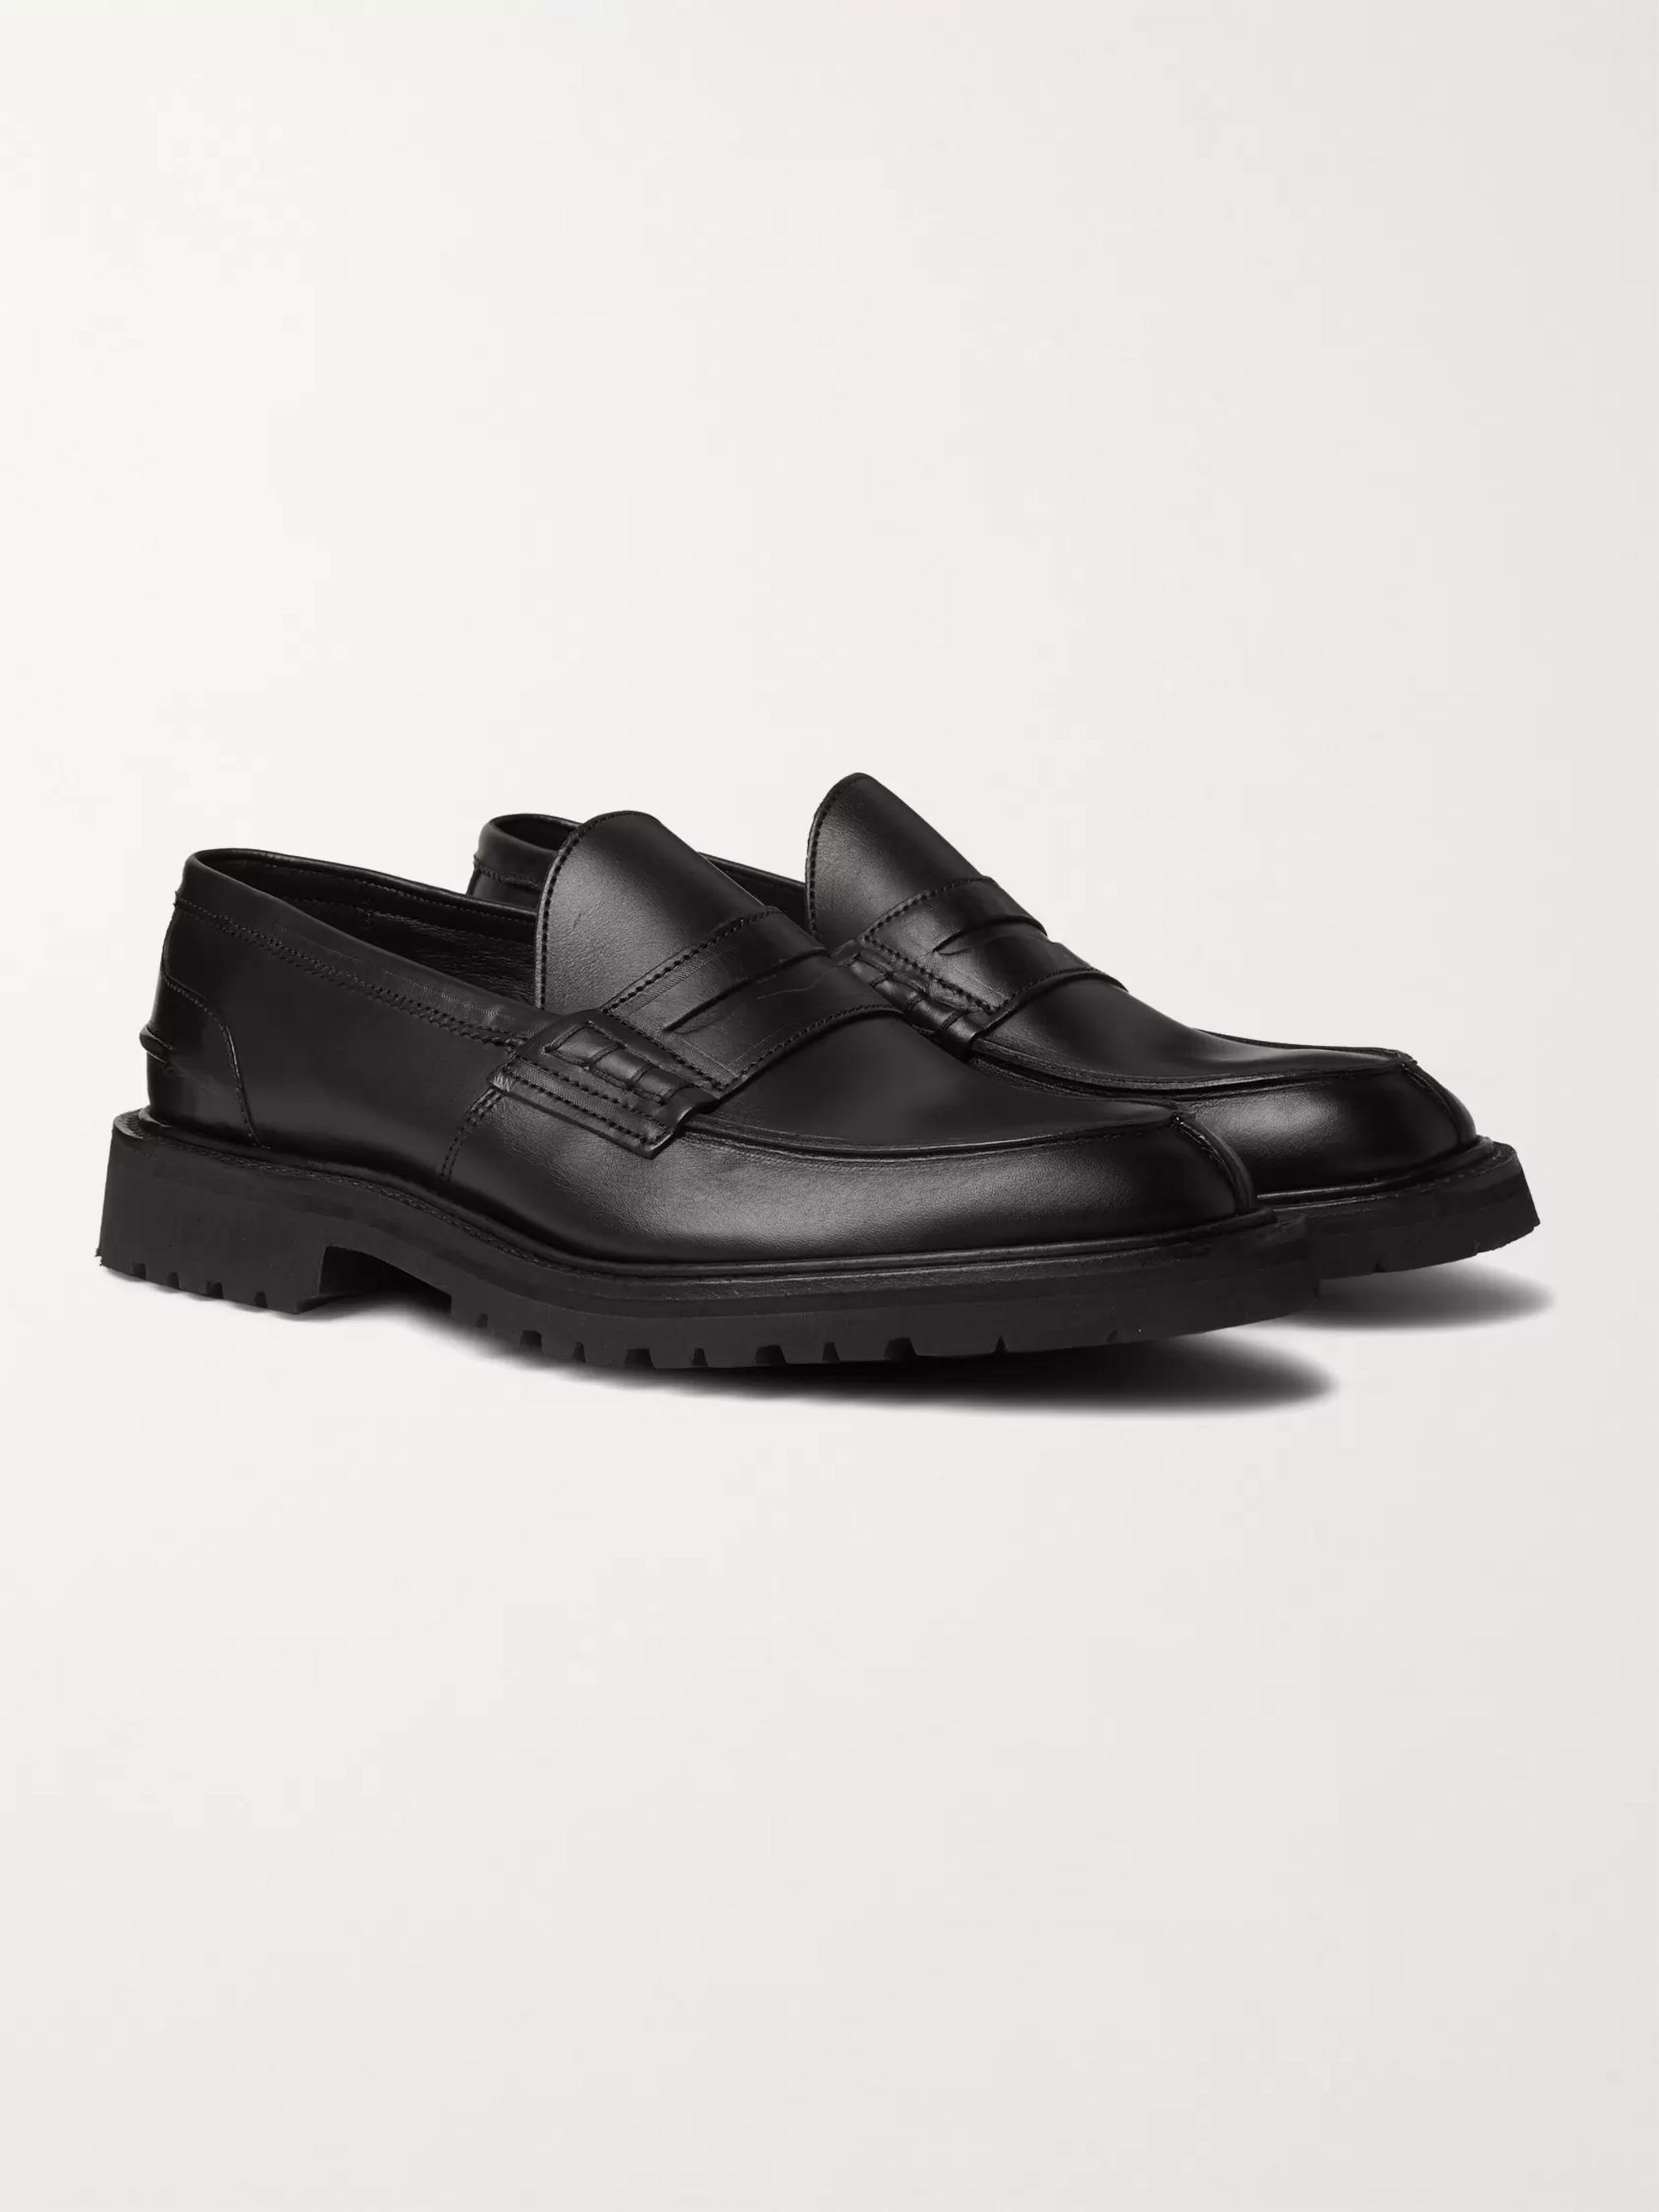 Black James Leather Loafers | Tricker's